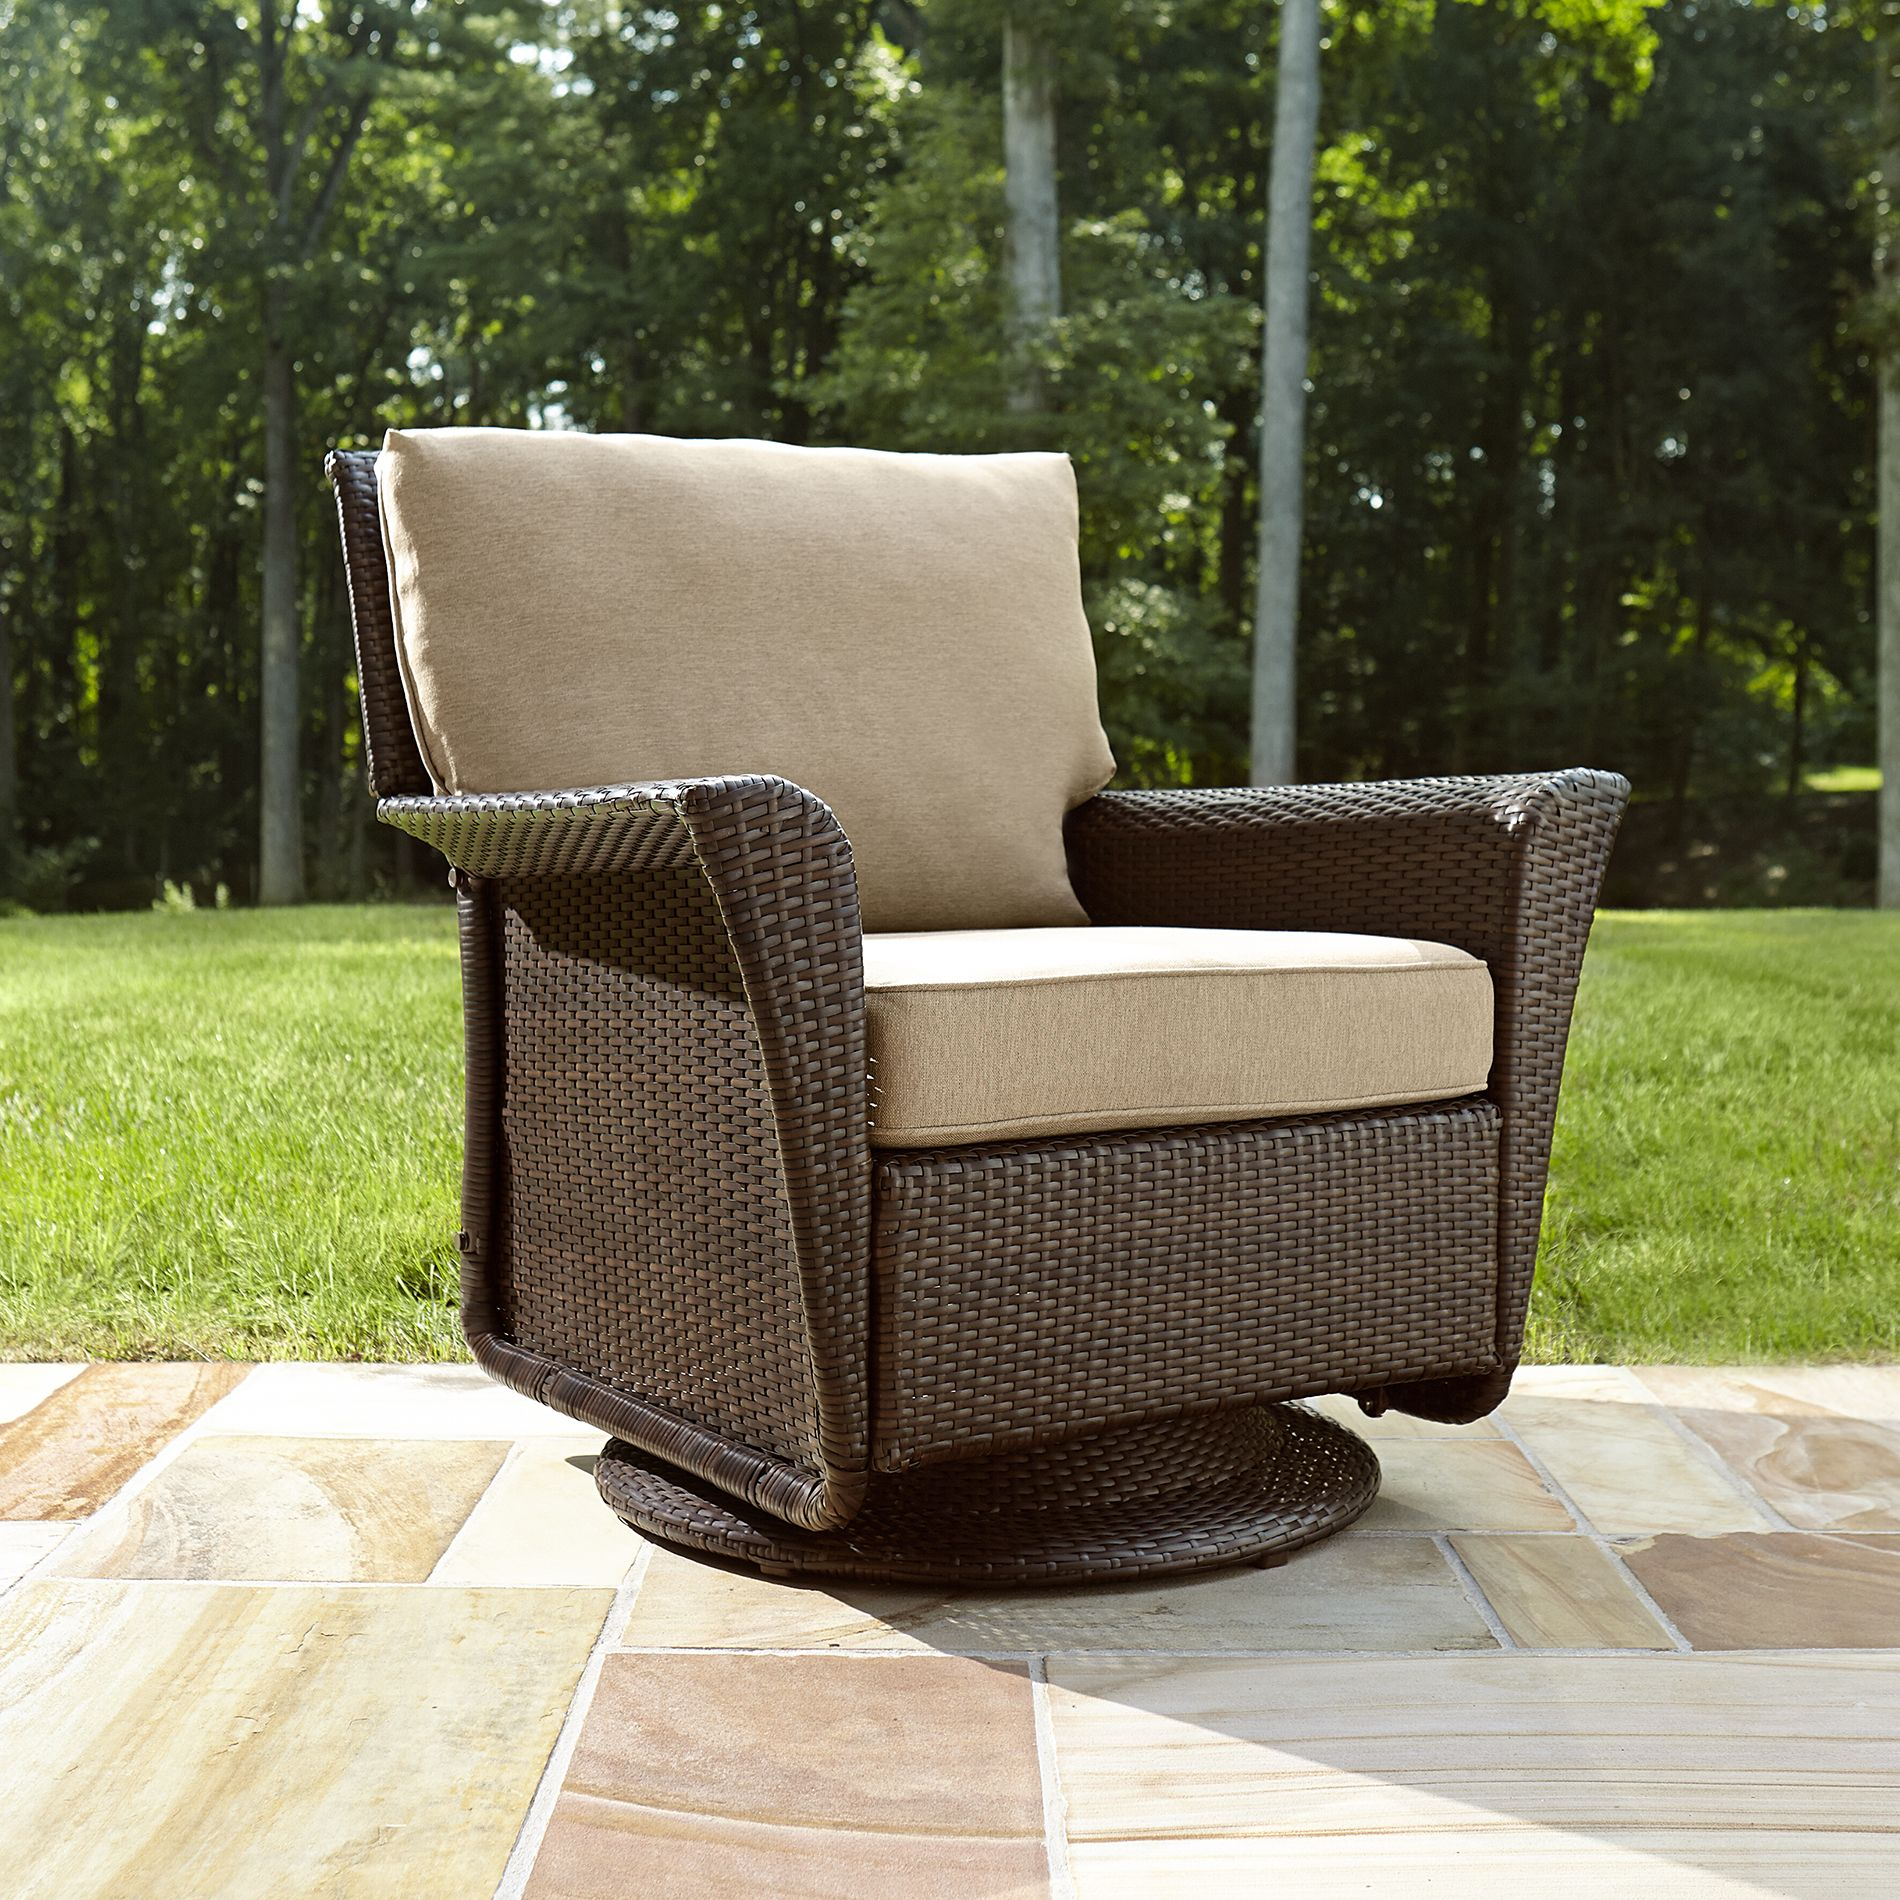 A Perfect Patio Glider Darbylanefurniture Com In 2020 Outdoor Glider Chair Swivel Glider Chair Glider Chair